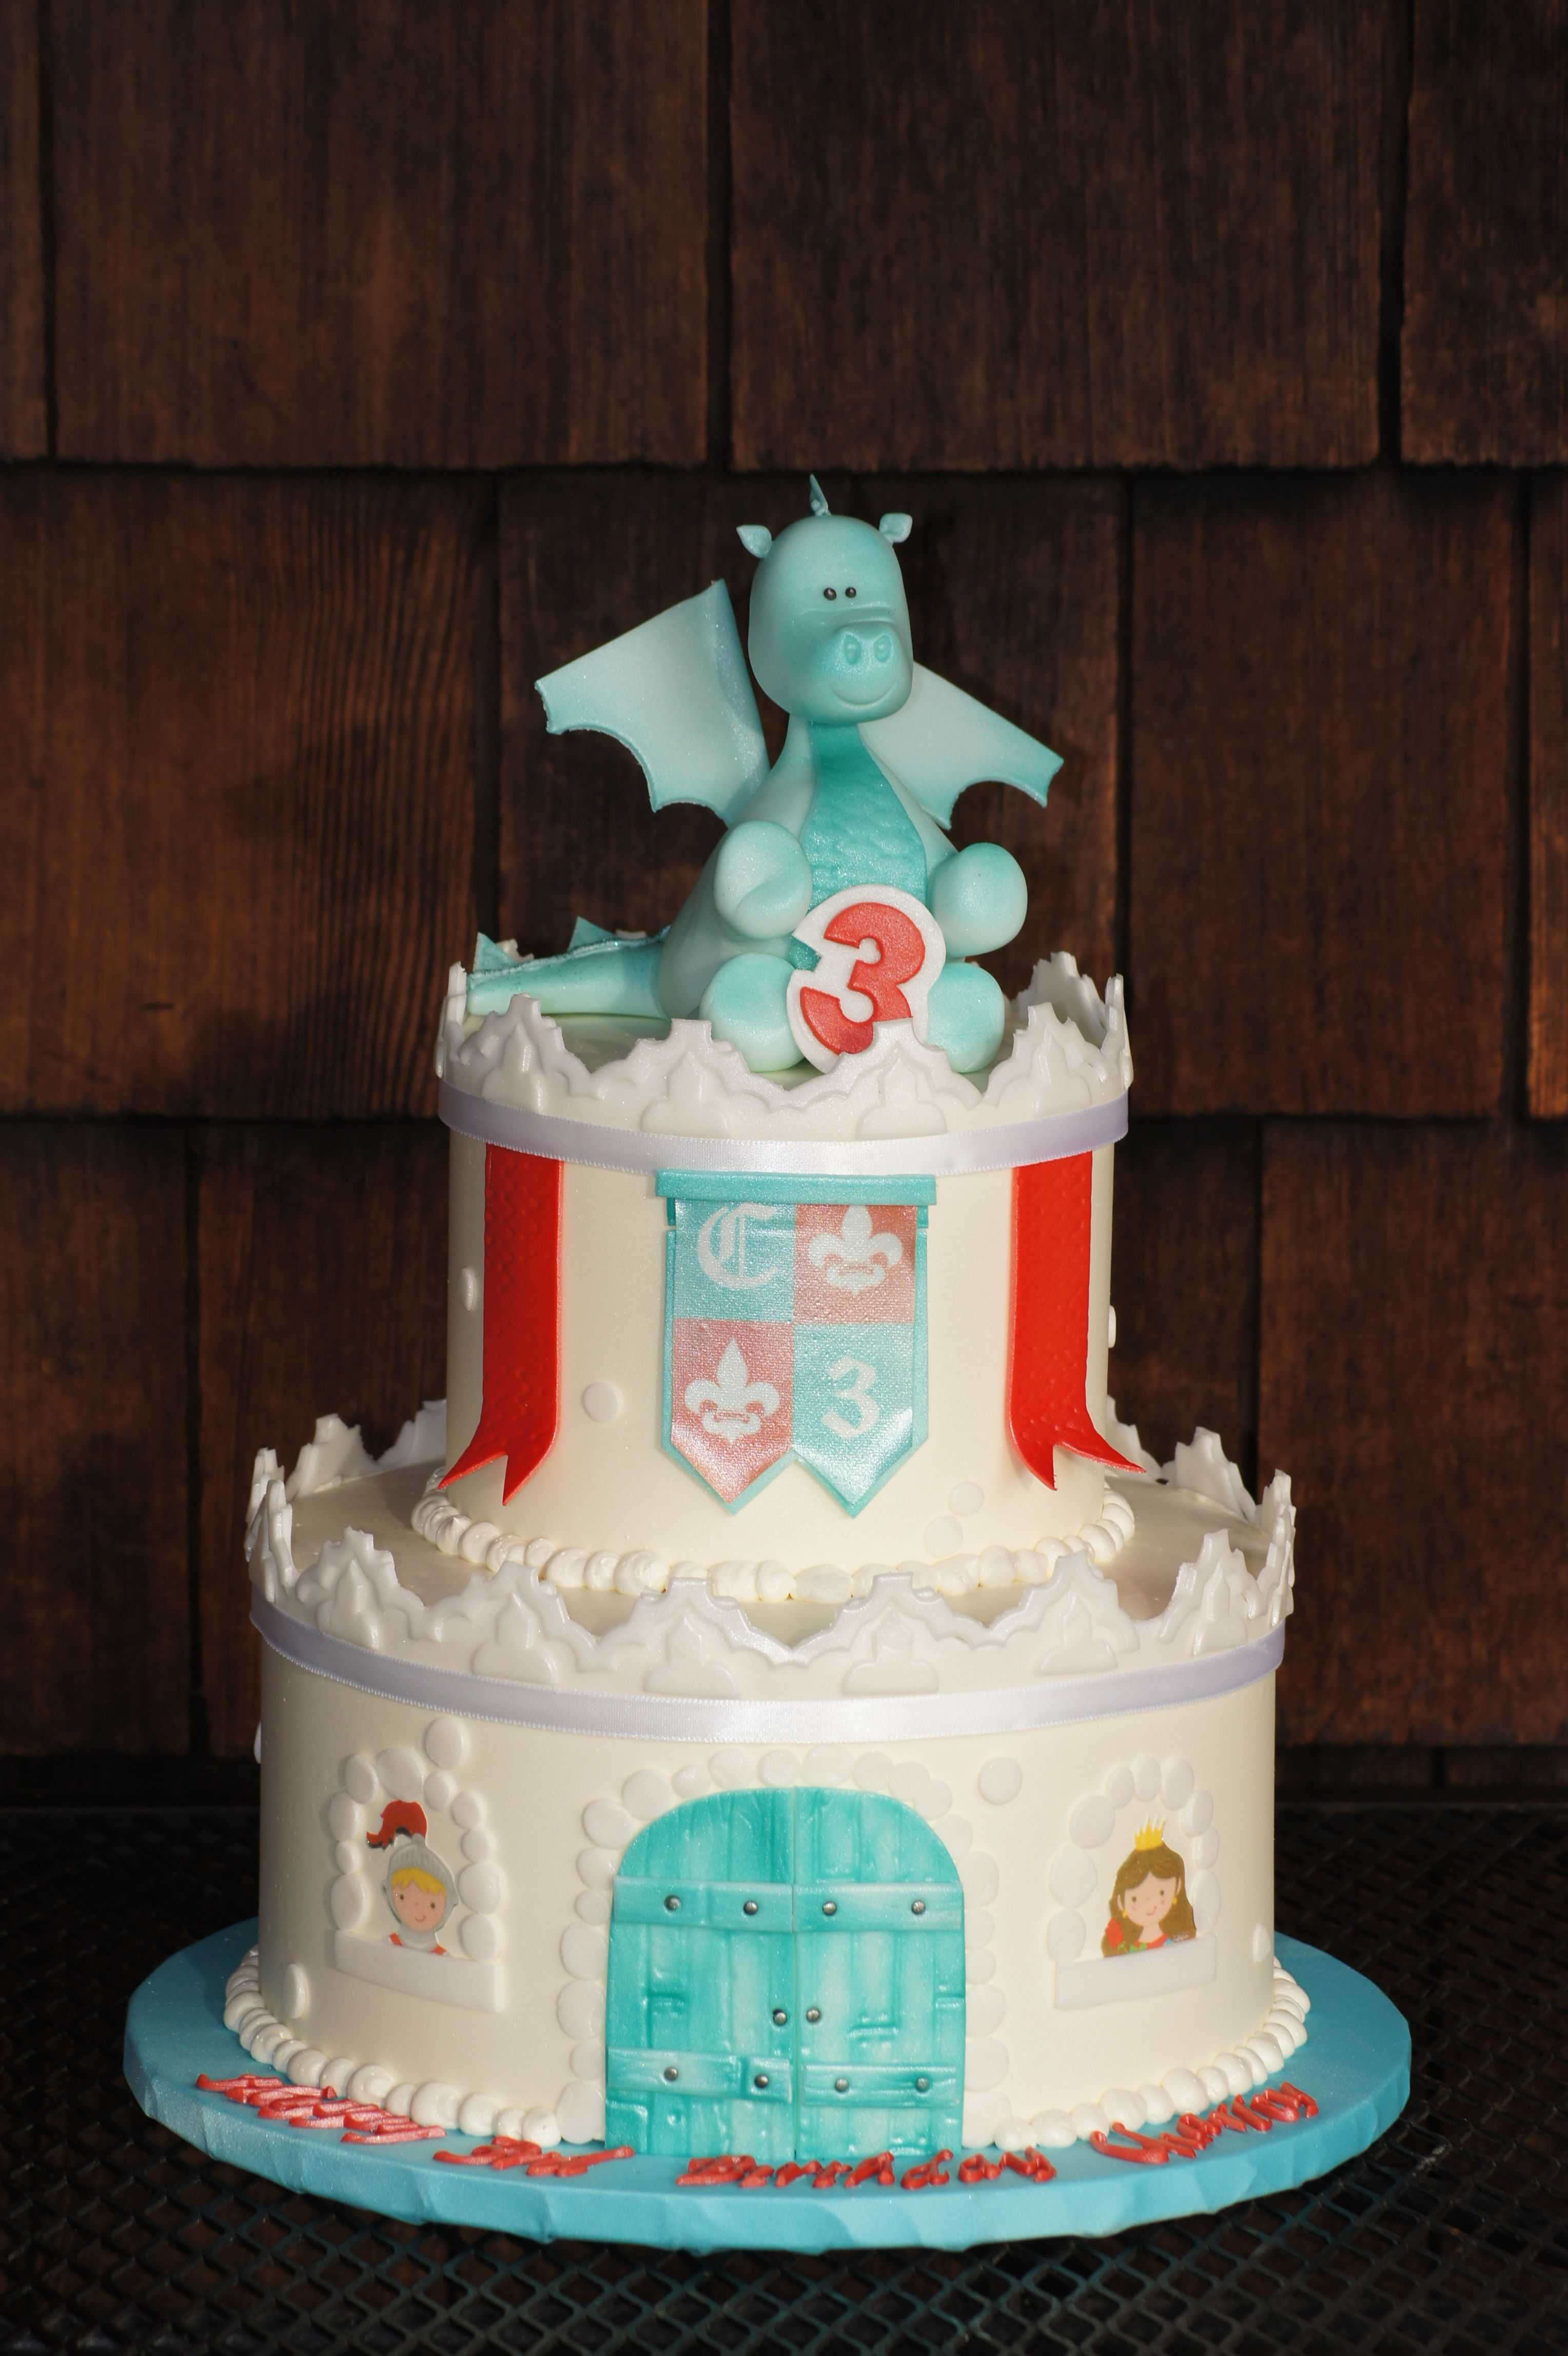 white castle shaped birthday cake with blue dragon topper